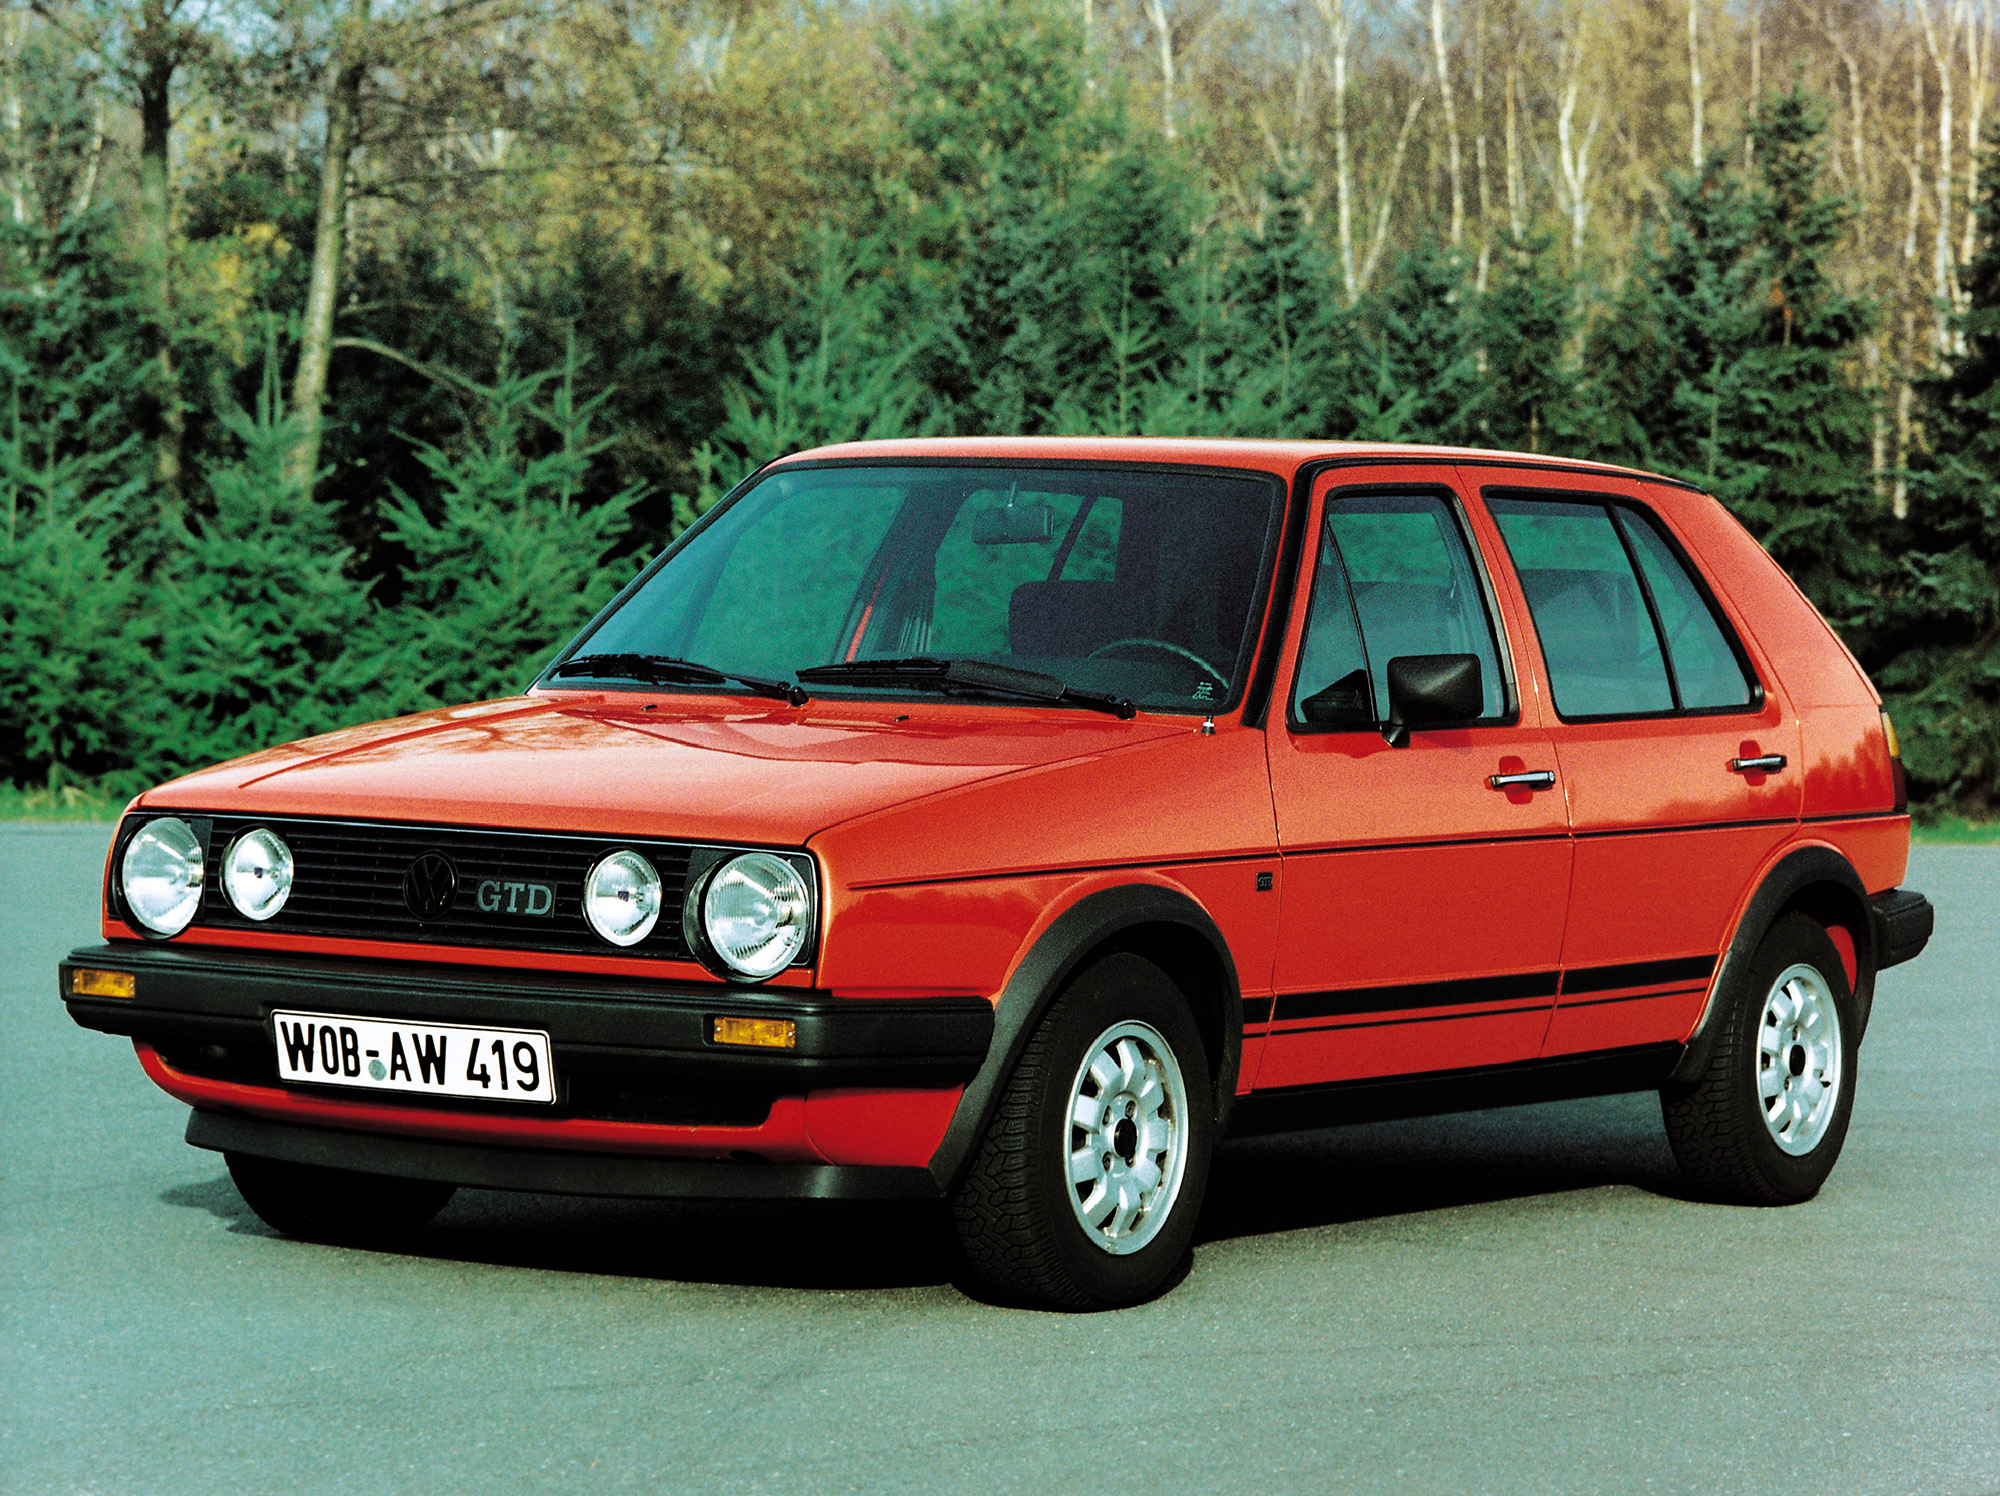 volkswagen golf gtd 35 years of fast and frugal fun influx. Black Bedroom Furniture Sets. Home Design Ideas